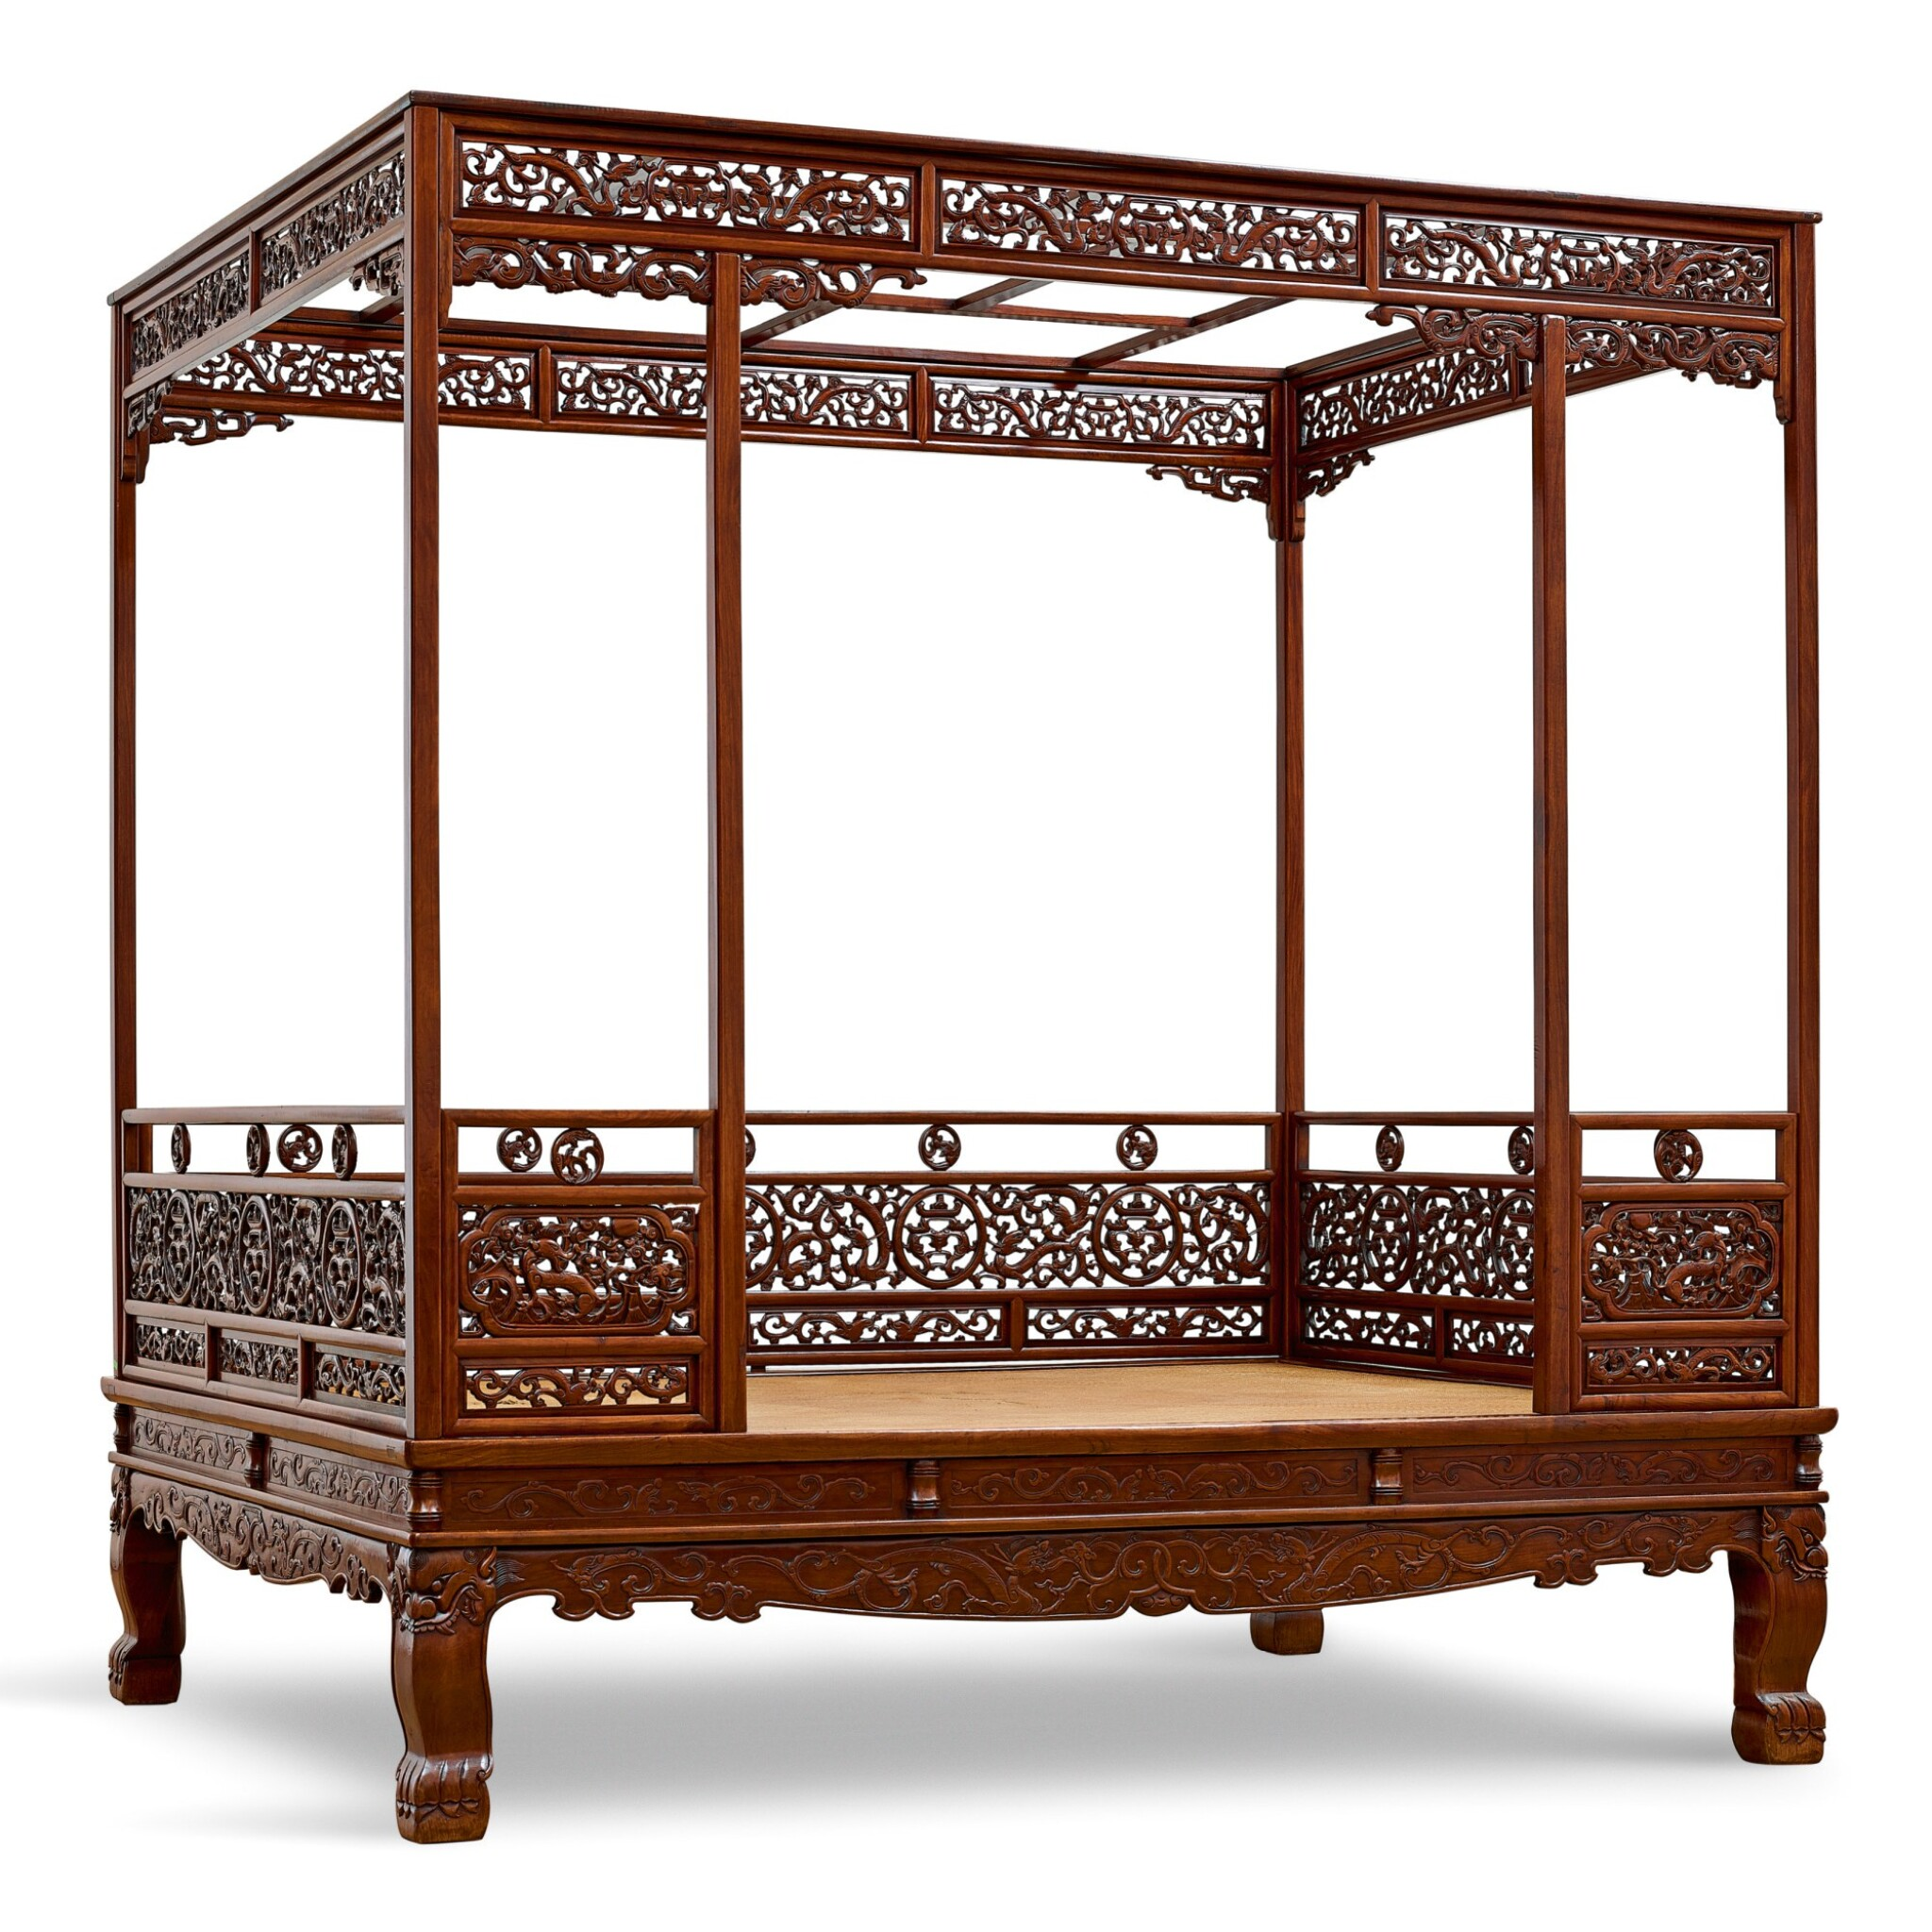 View full screen - View 1 of Lot 53. AN EXCEPTIONAL AND RARE HUANGHUALI SIX-POST CANOPY BED MING DYNASTY, 17TH CENTURY | 明十七世紀 黃花梨六柱透雕螭龍瑞獸紋圍子架子床.